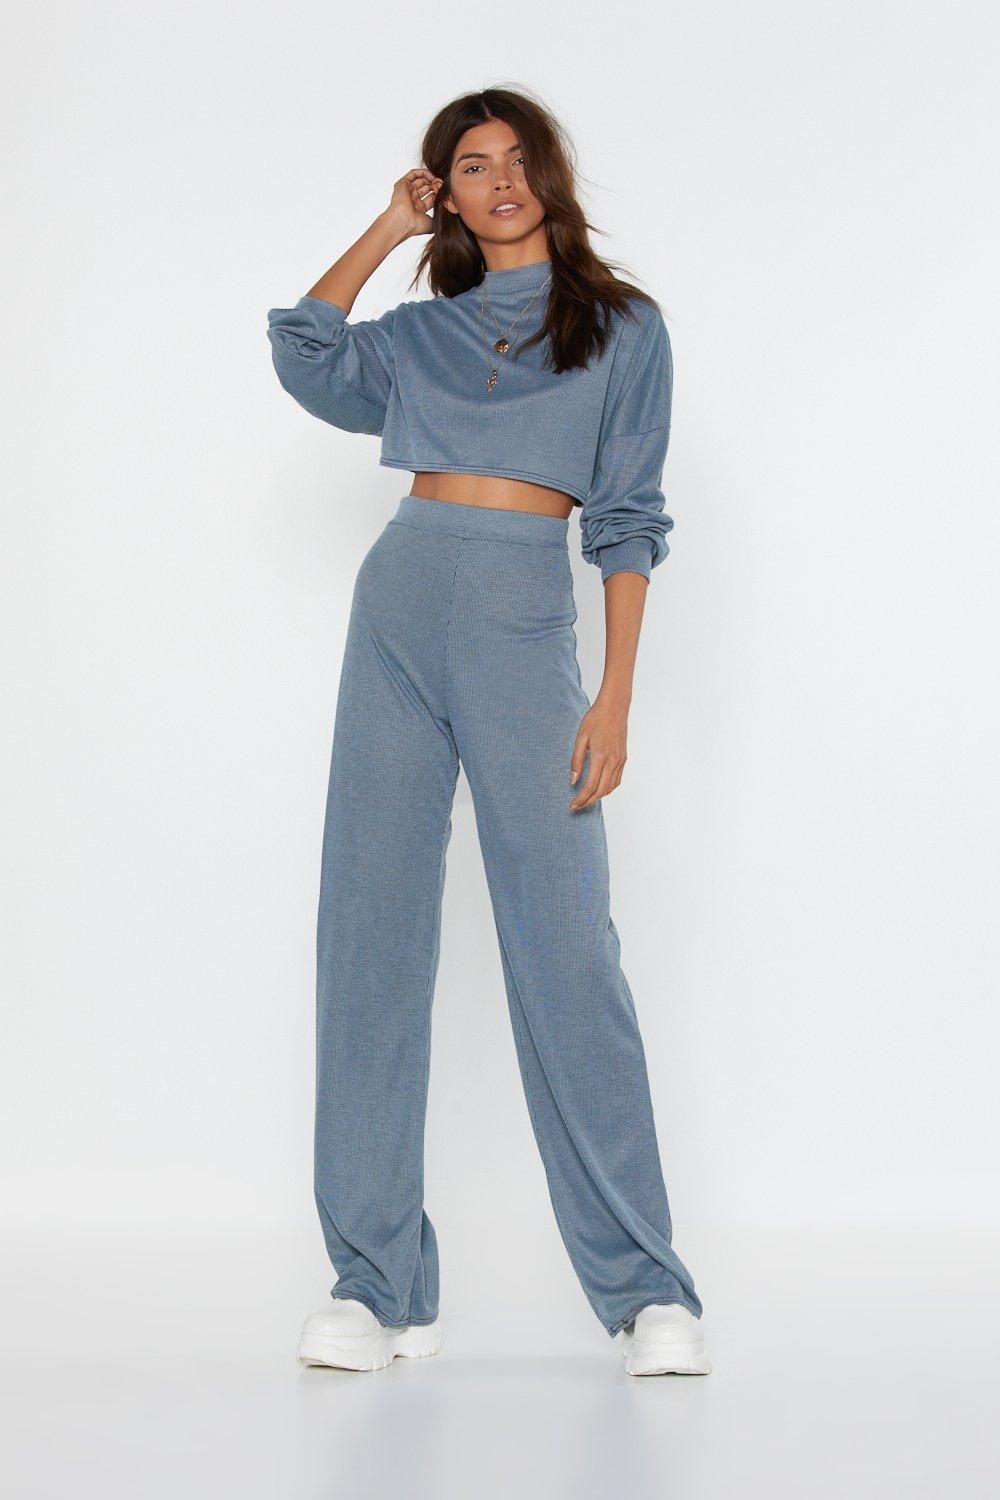 Lounge wear Back to Basics Crop Top and Trousers Lounge Set